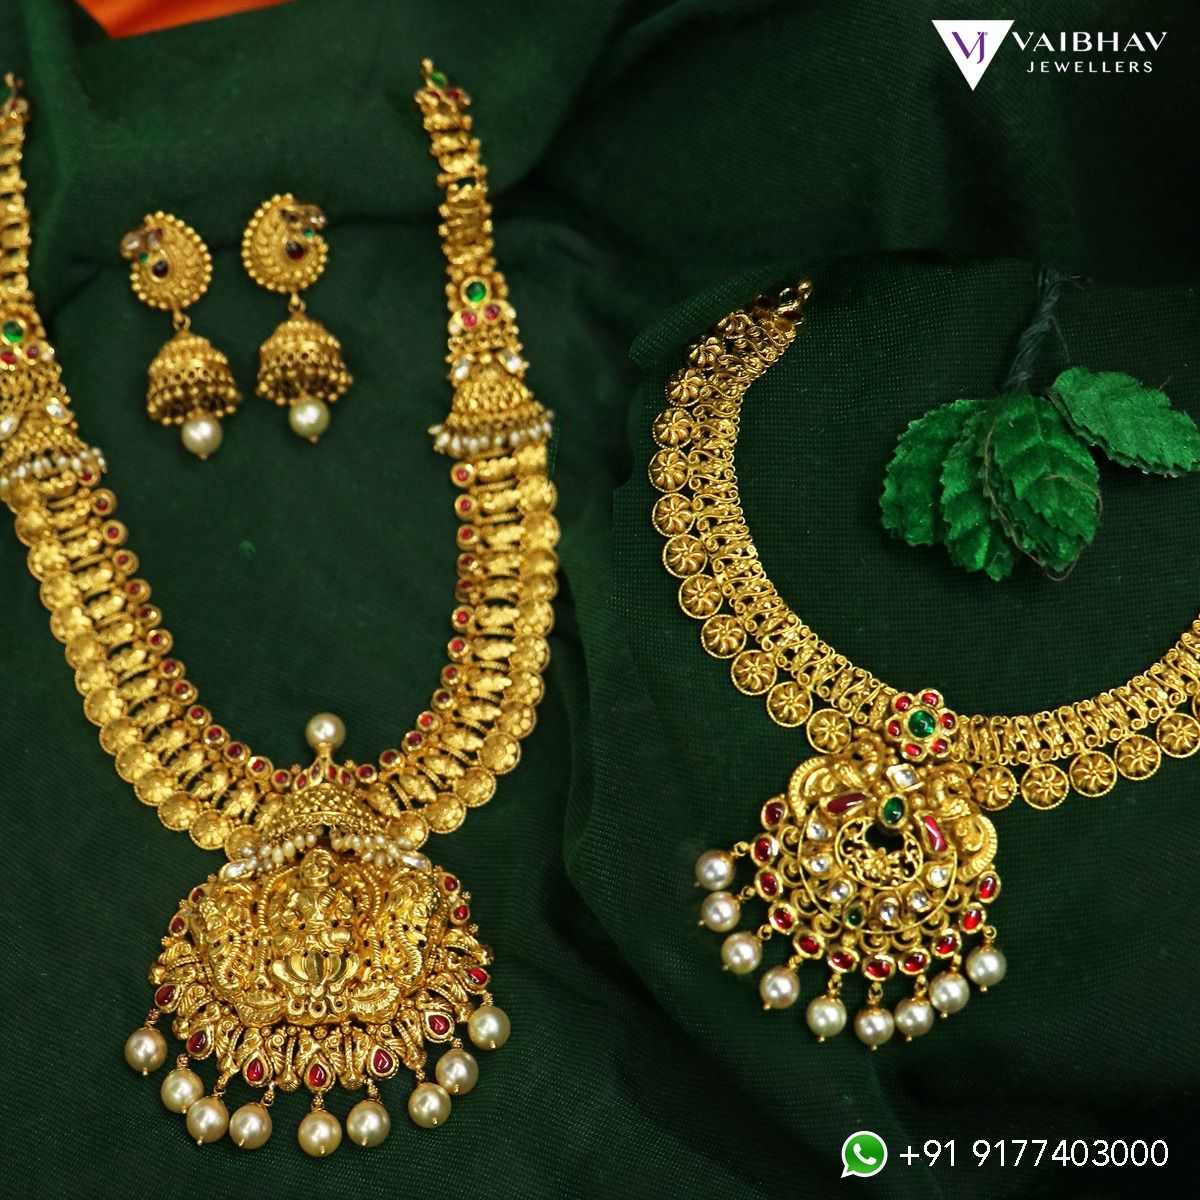 Antique Jewellery Collection From Vaibhav Jewellers In 2020 Antique Necklaces Design Silver Jewellery Online Online Gold Jewellery,Modern Style Granite Kitchen Platform Design Images